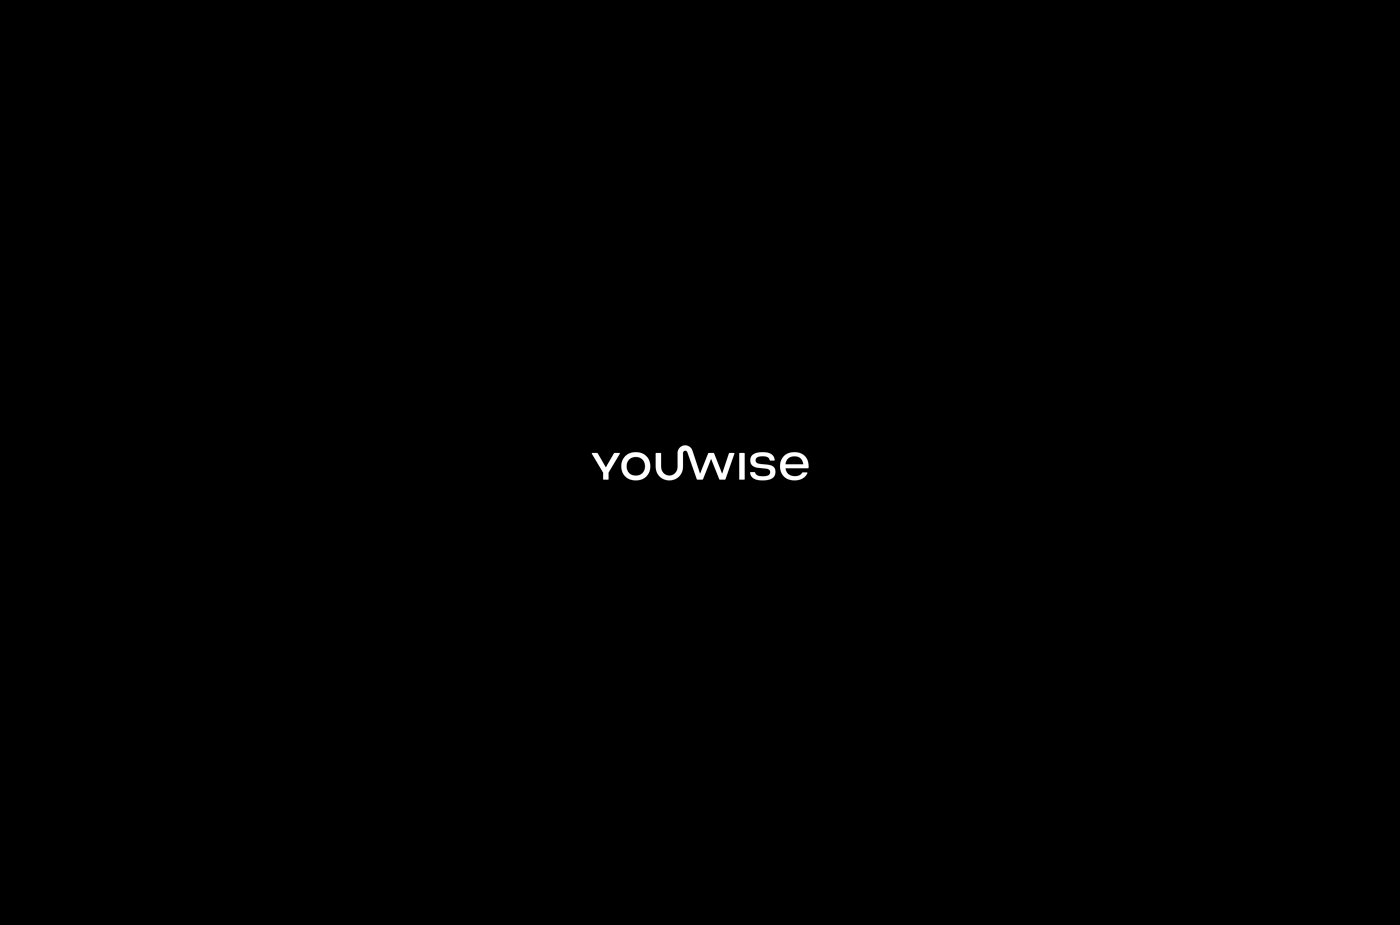 Youwise.png